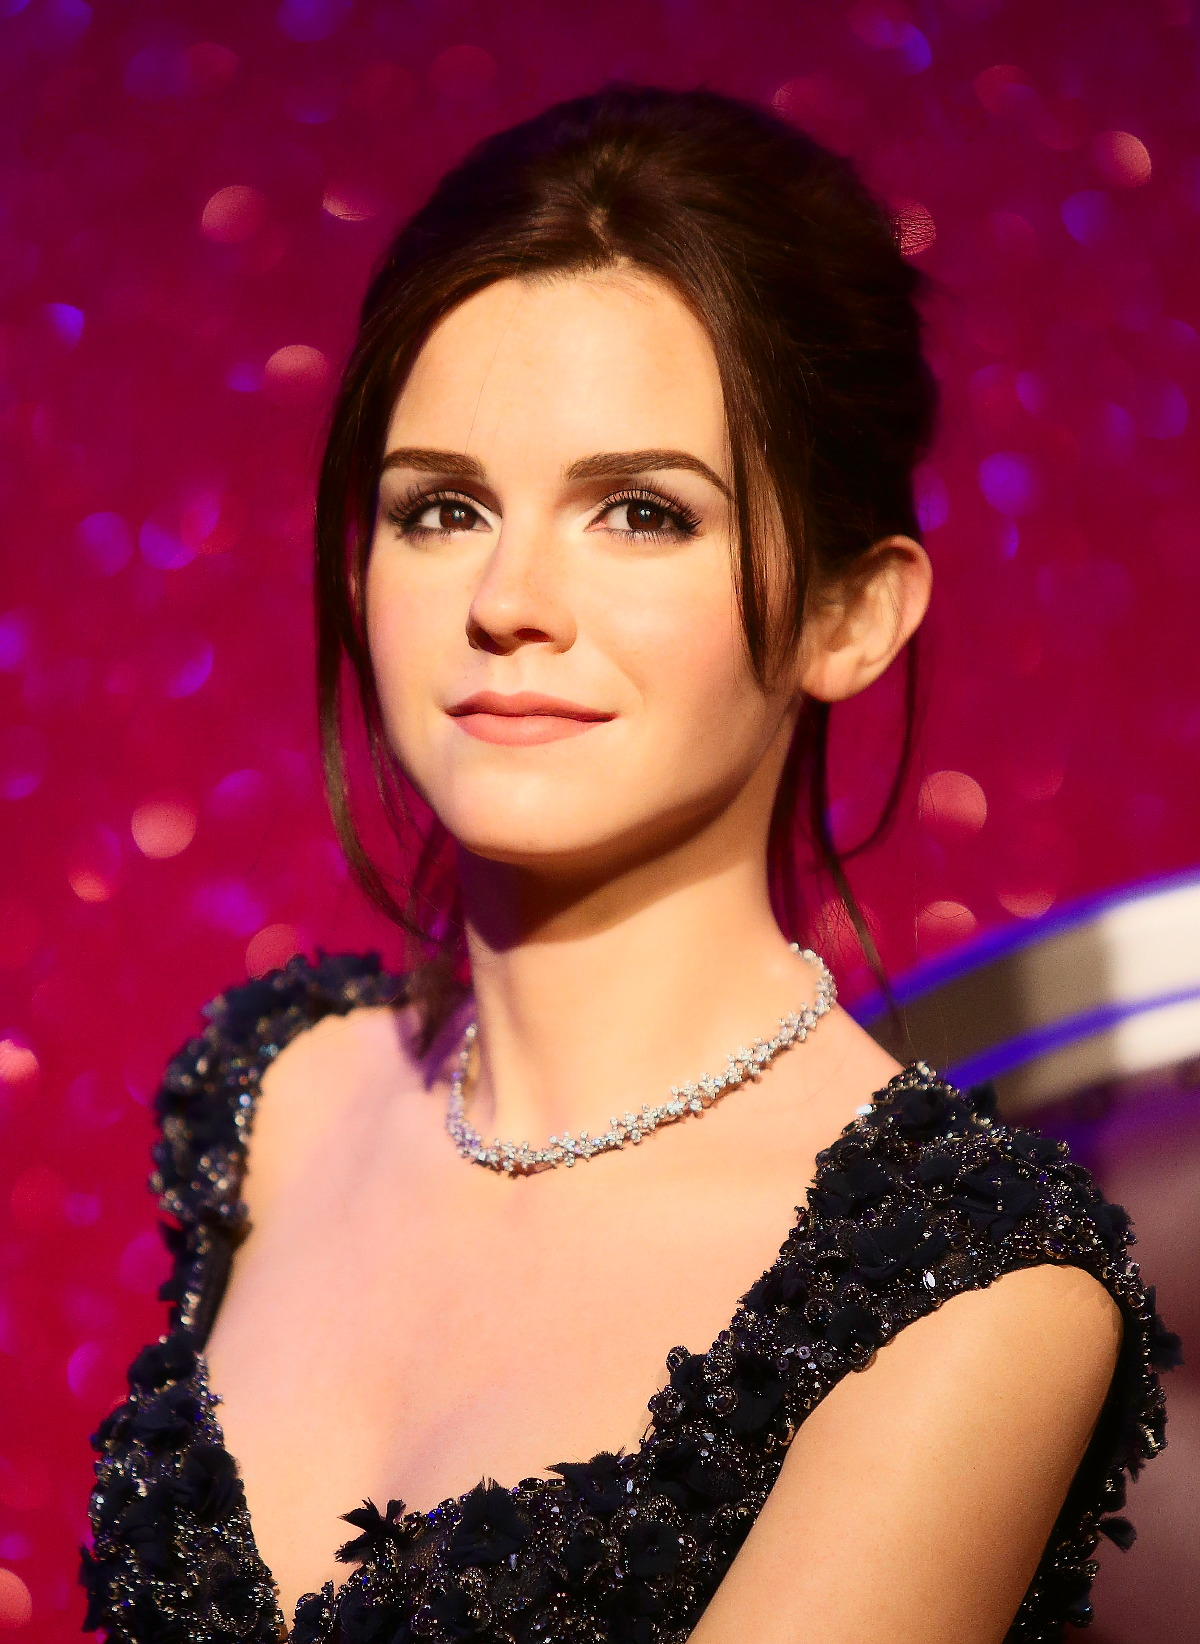 Emma Watson Wachs Figur im Madame Tussauds in London